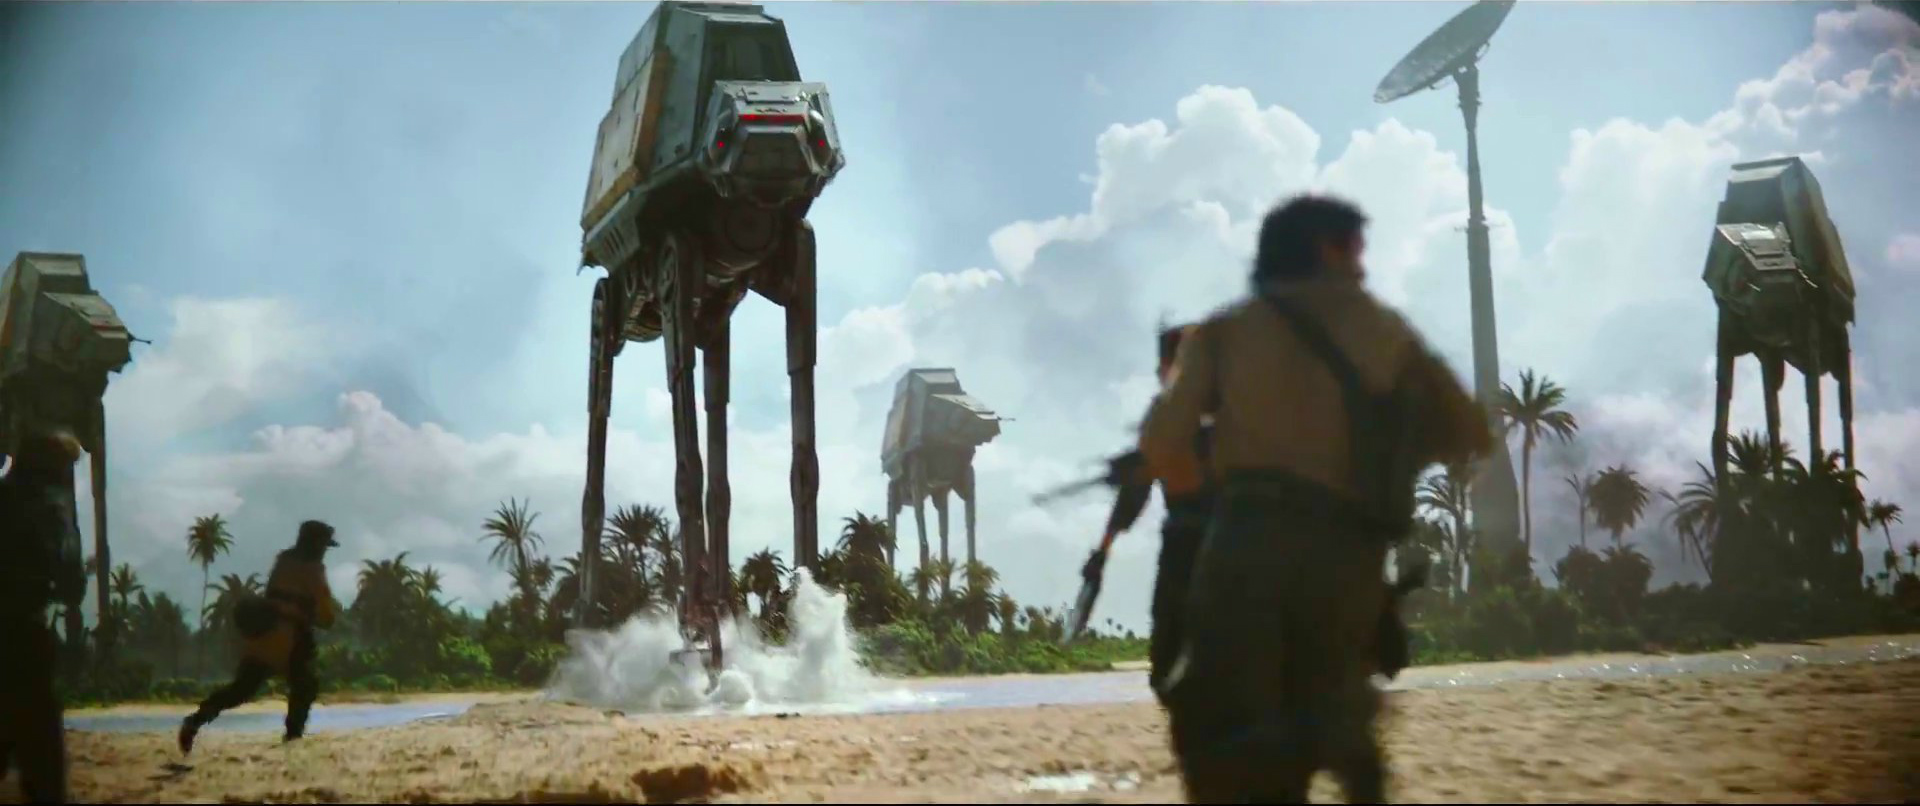 Rogue One: A Star Wars Story Trailer Screenshots Offer Play-By-Play Breakdown